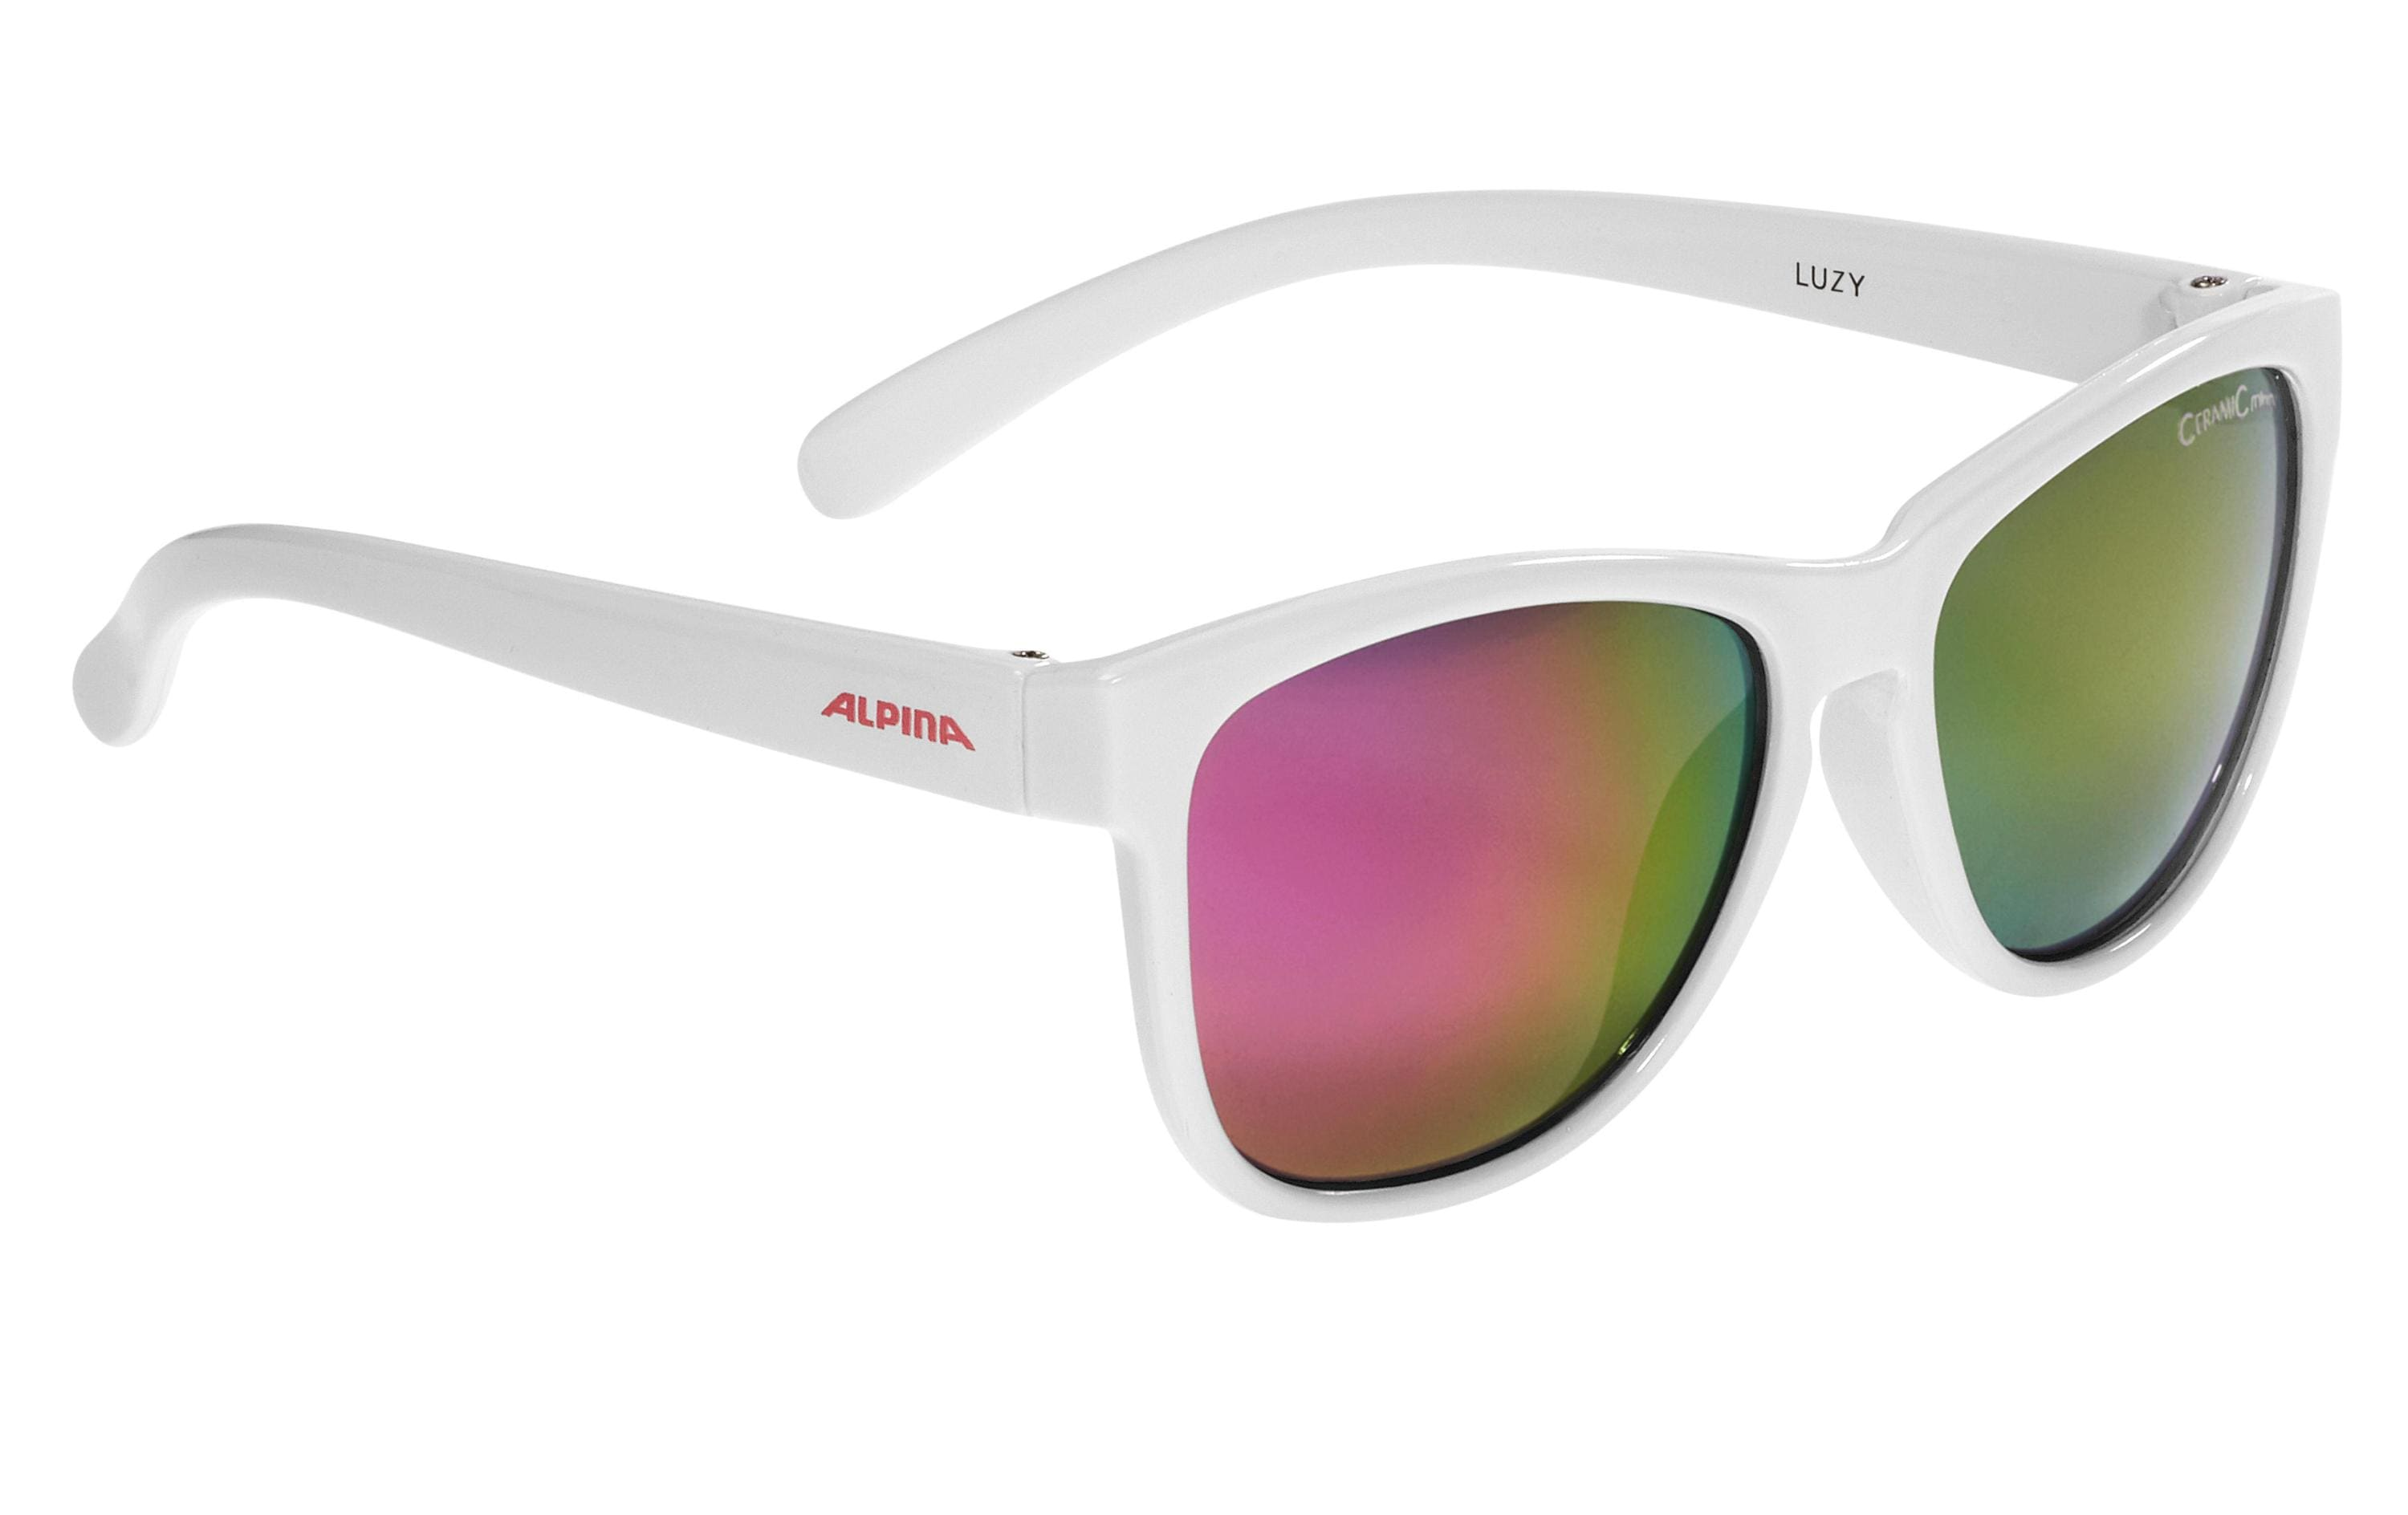 Image of Alpina Sports Sonnenbrille »Luzy«